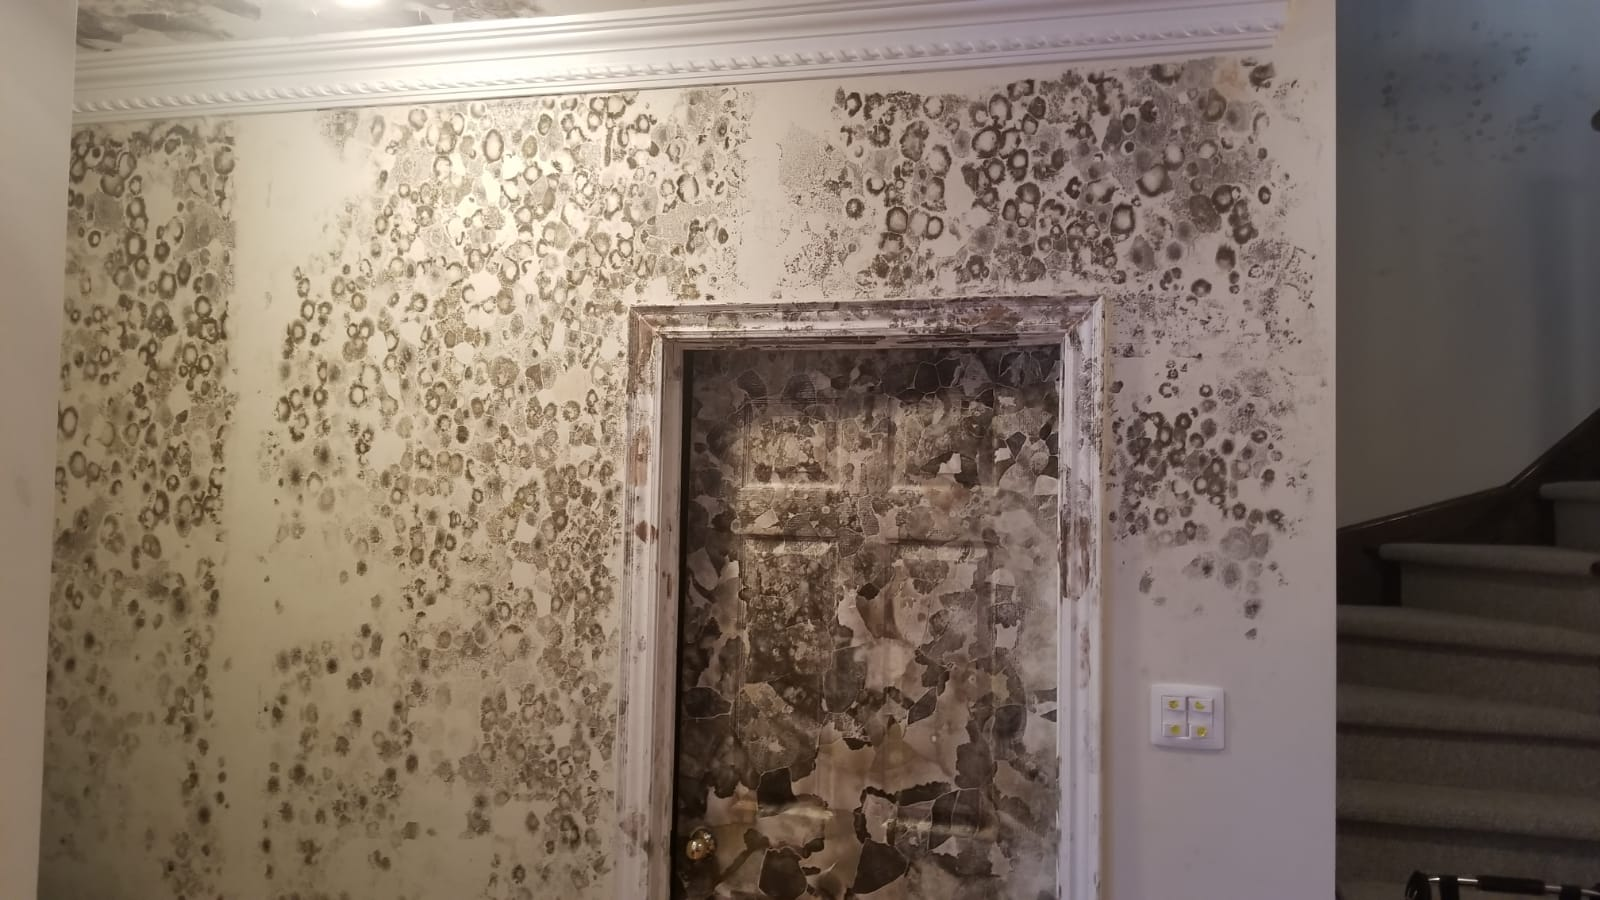 mold in burlington, mold inspection burlington, mold removal burlington